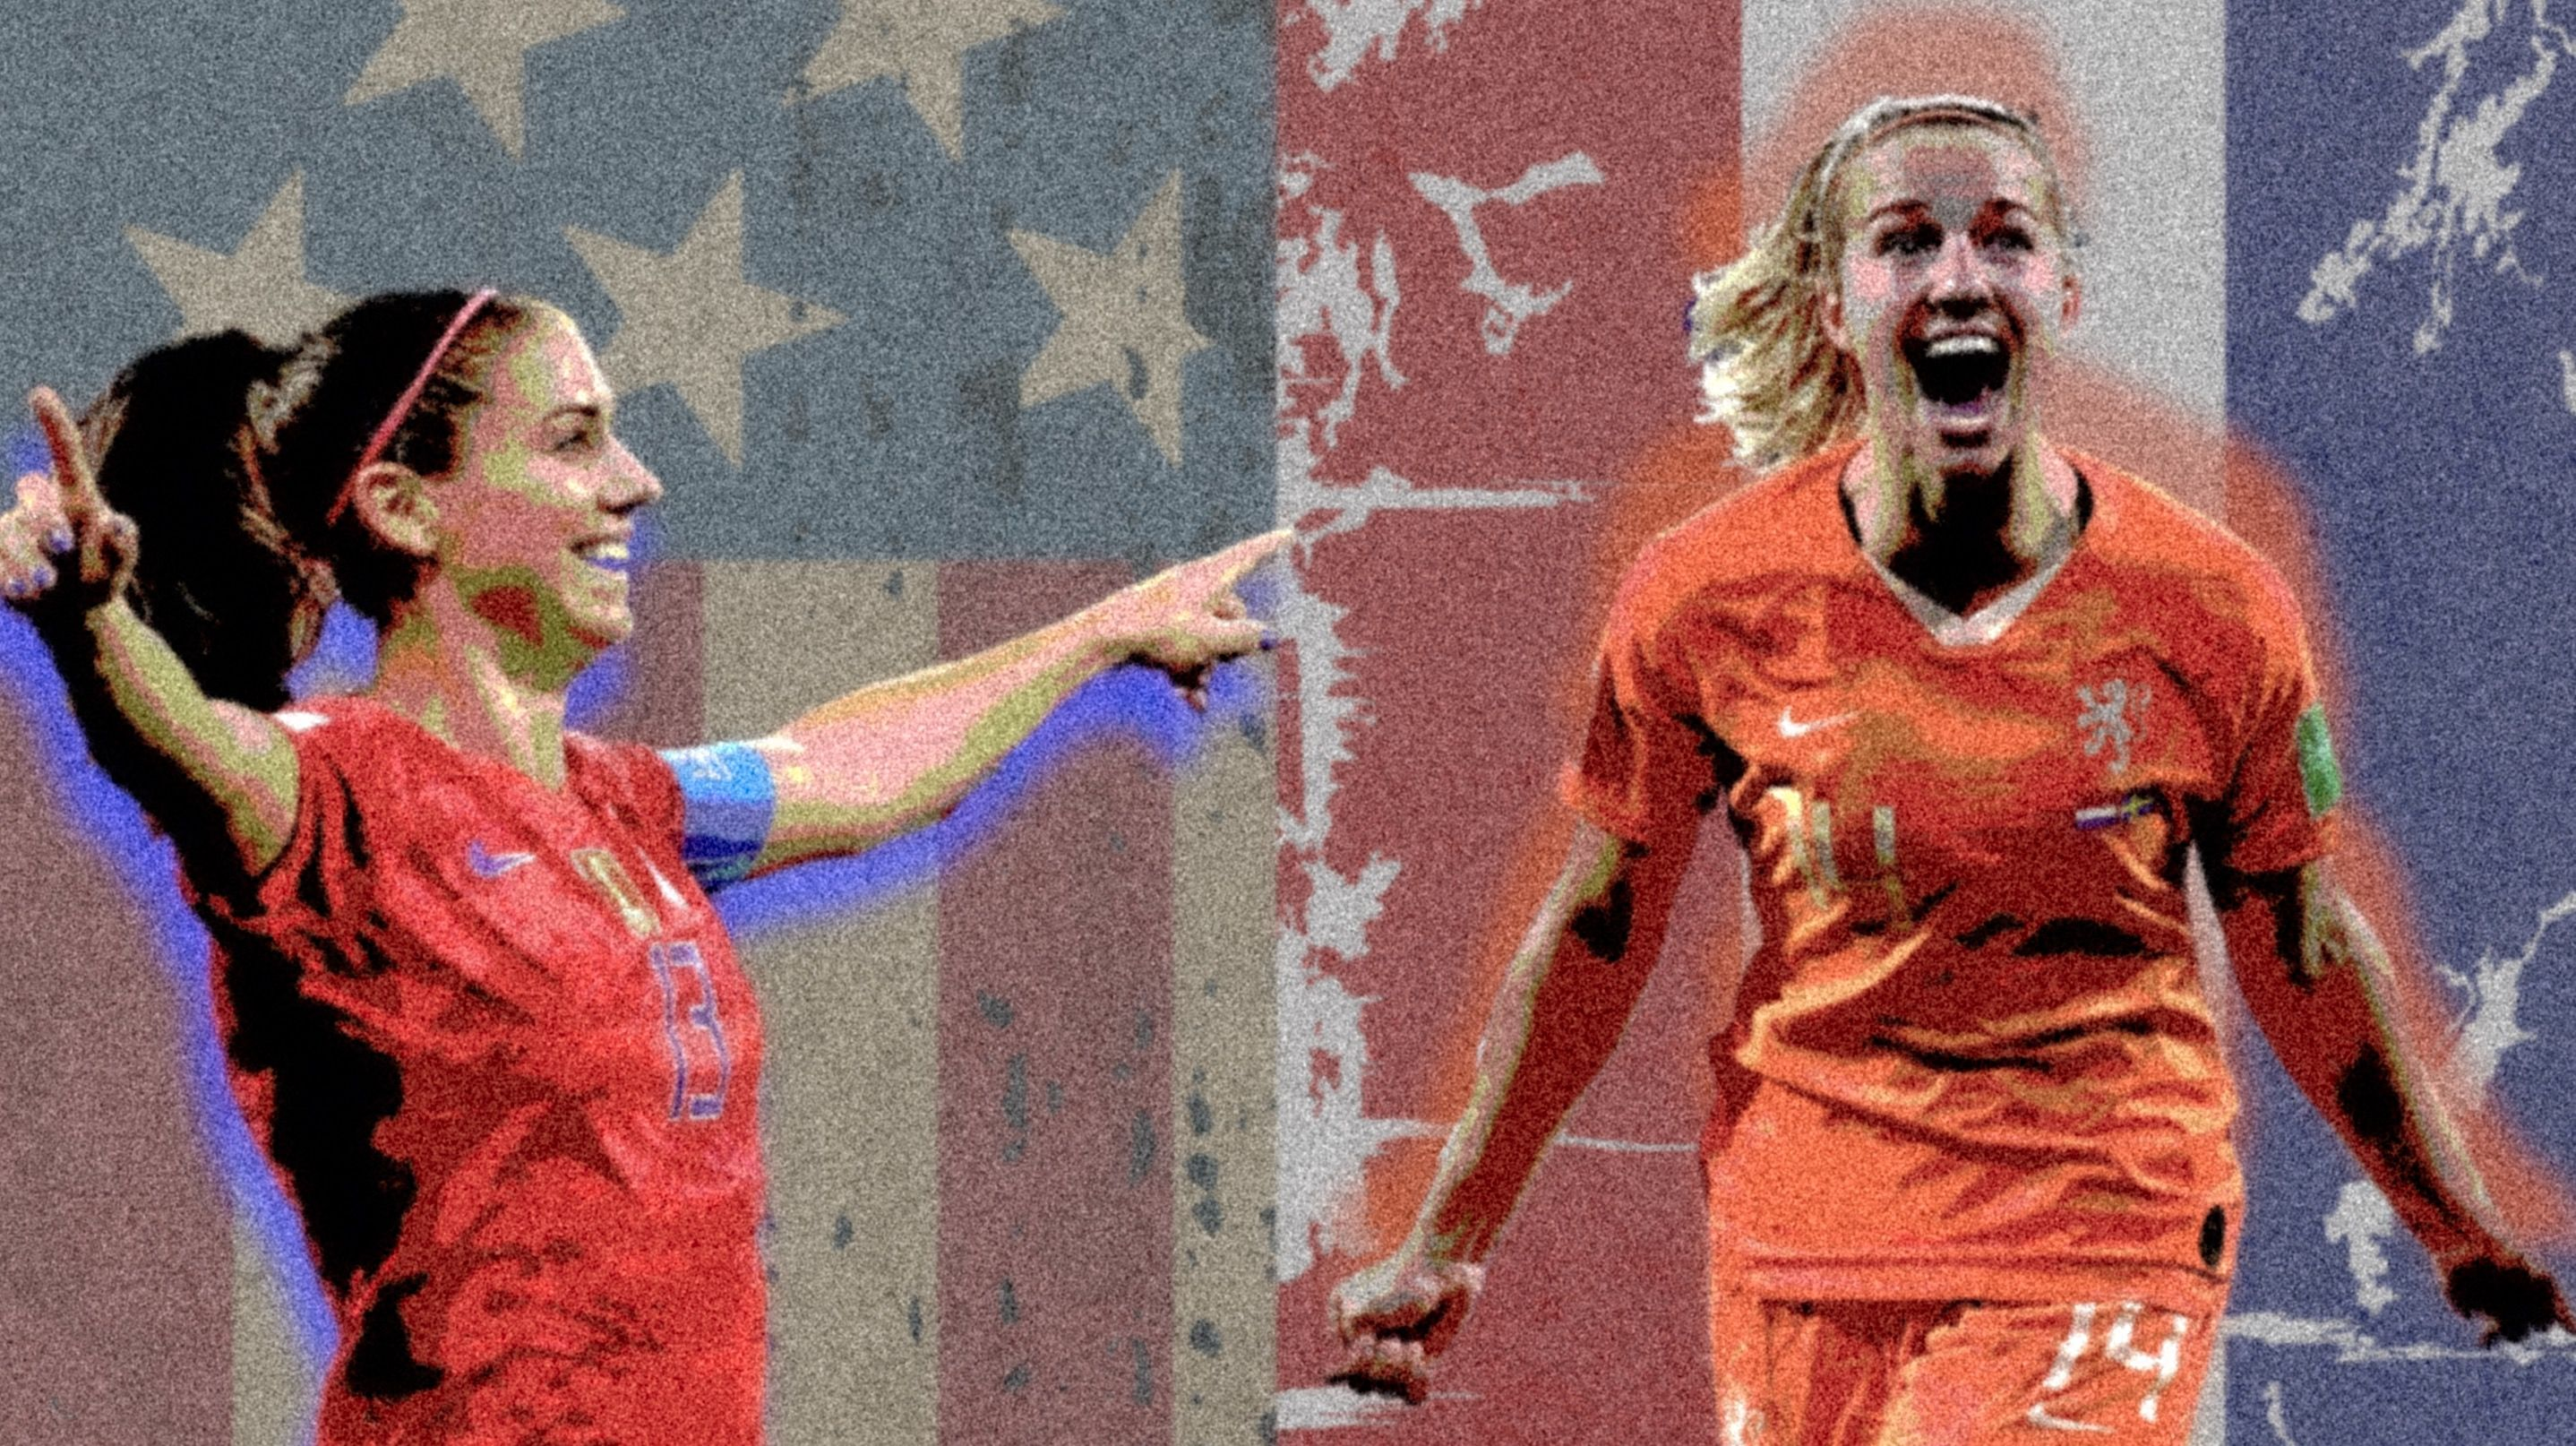 Uswnt Vs Netherlands 2019 Fifa Women S World Cup France Result Usa Won The Final 2 0 Photo Alex Morgan Usa And Jackie Groenen Netherlands